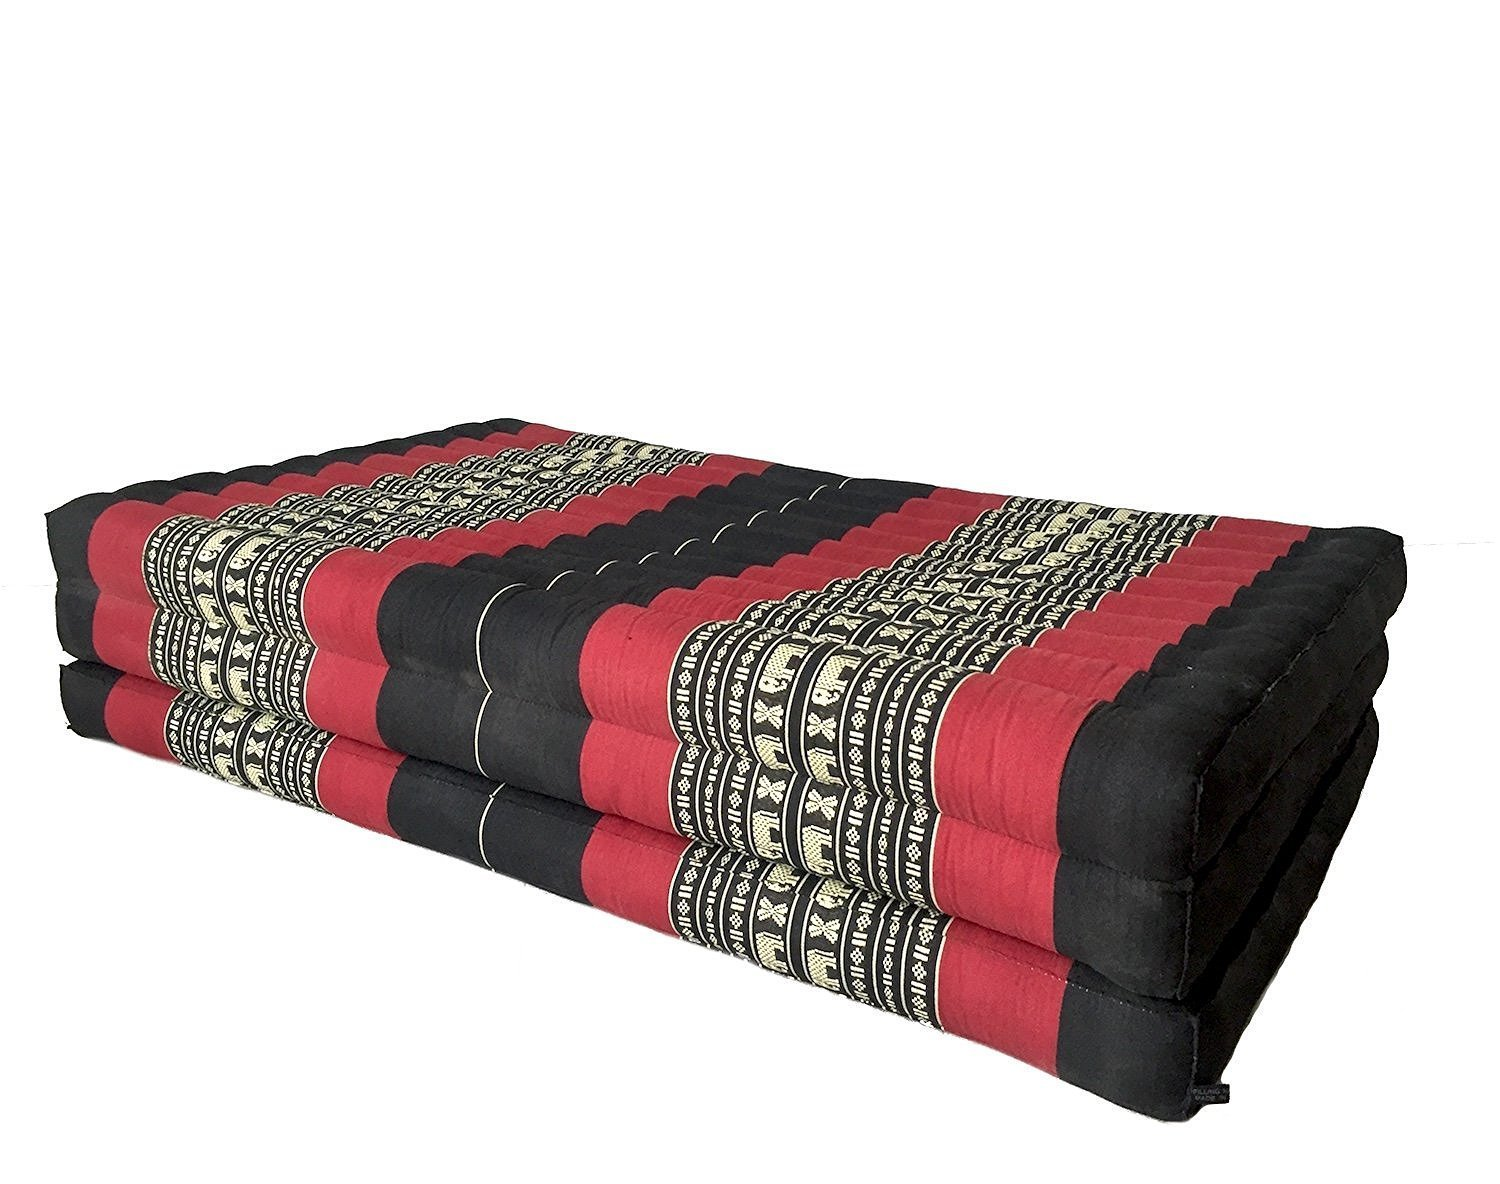 Design by UnseenThailand Thai Massage Mat, Kapok Fabric, Premium Double Stitched, 82x46x3 inches. (Black - Red) by UnseenThailand Warehouse